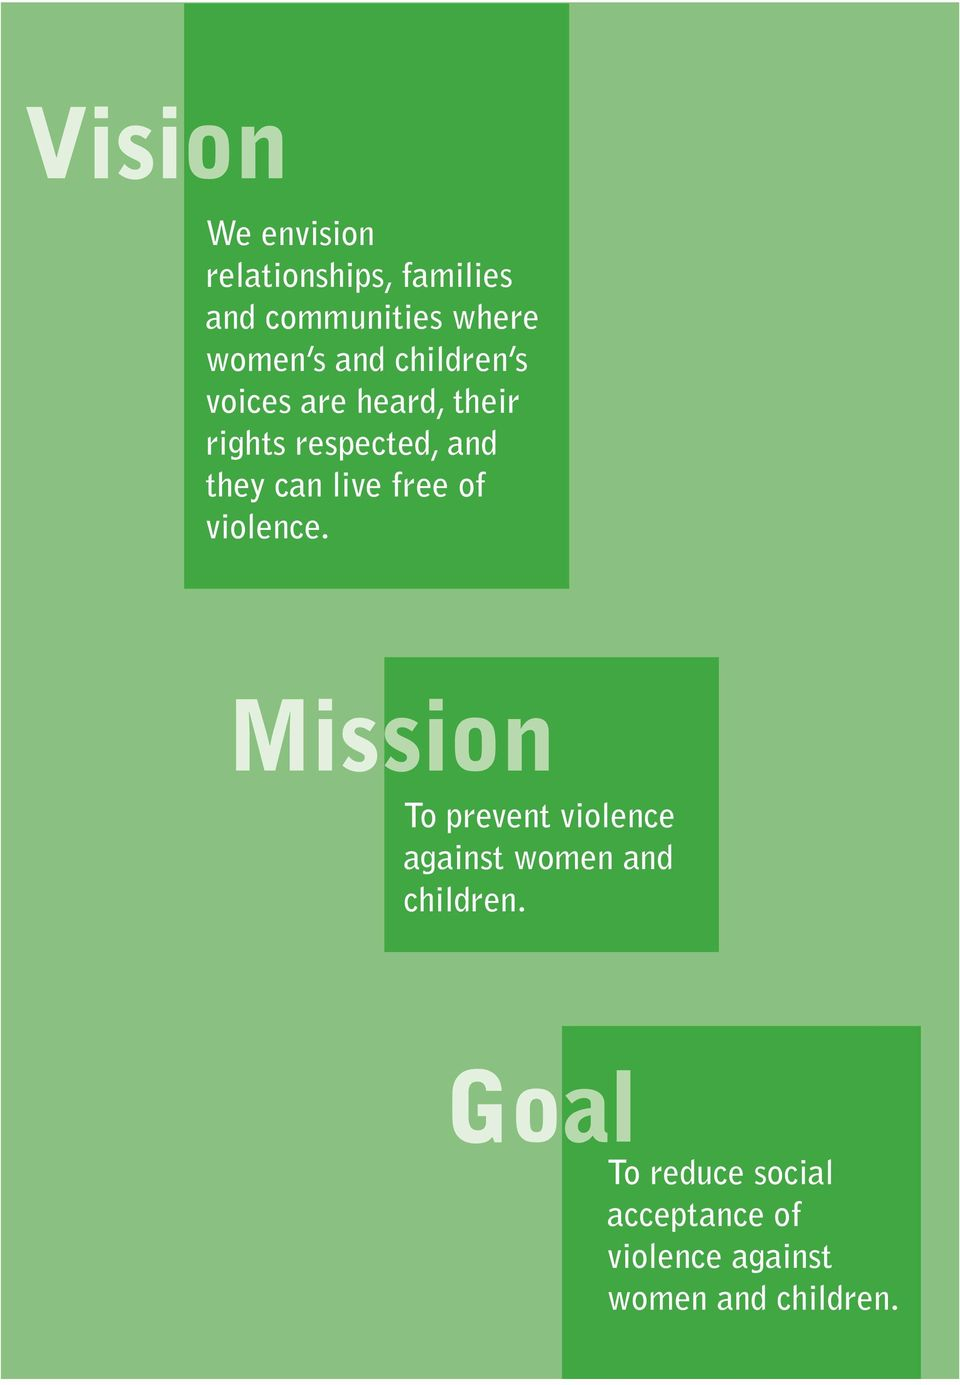 violence. Mission To prevent violence against women and children.